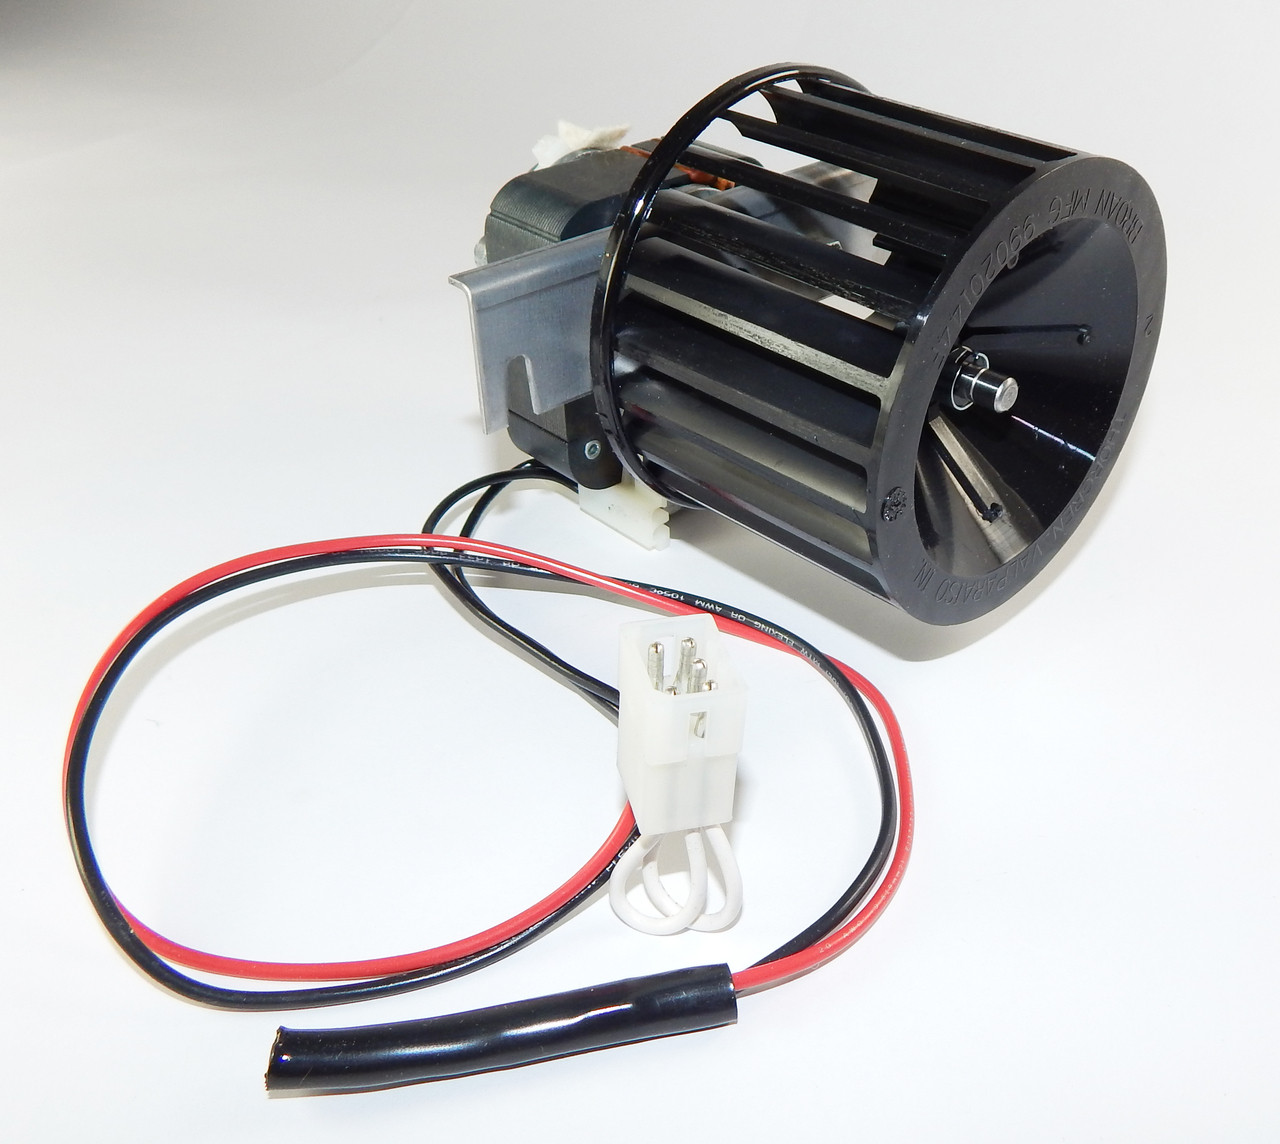 97006223__73009.1494425352.1280.1280?c=2 nutone broan replacement fan motors electric motor warehouse Vent a Hood Wiring Diagram at gsmx.co